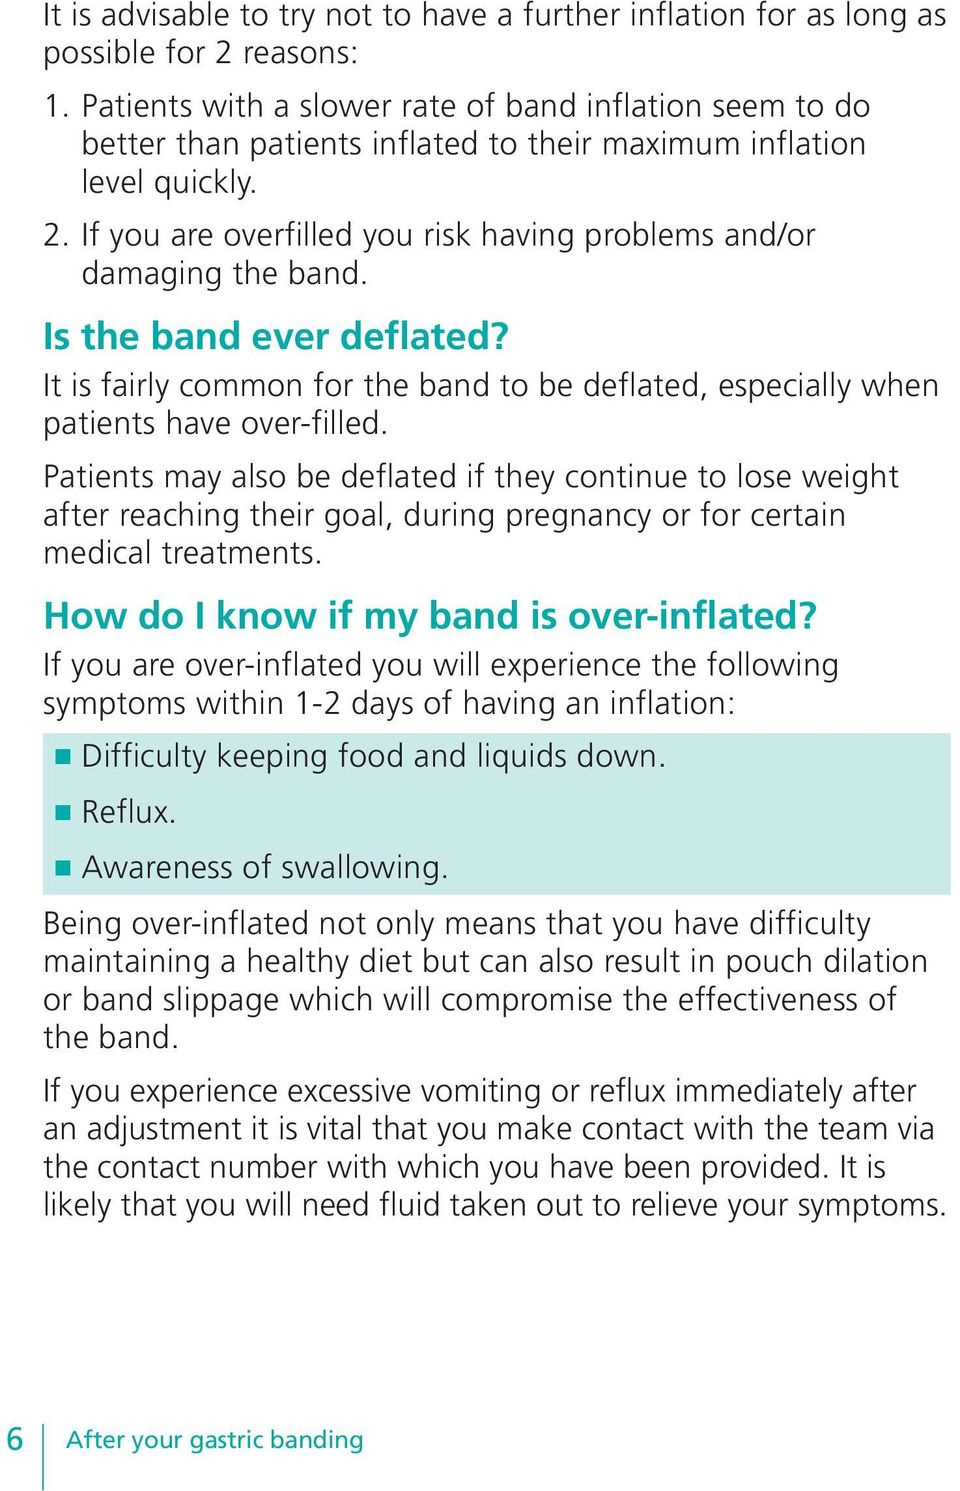 If you are overfilled you risk having problems and/or damaging the band. Is the band ever deflated? It is fairly common for the band to be deflated, especially when patients have over-filled.